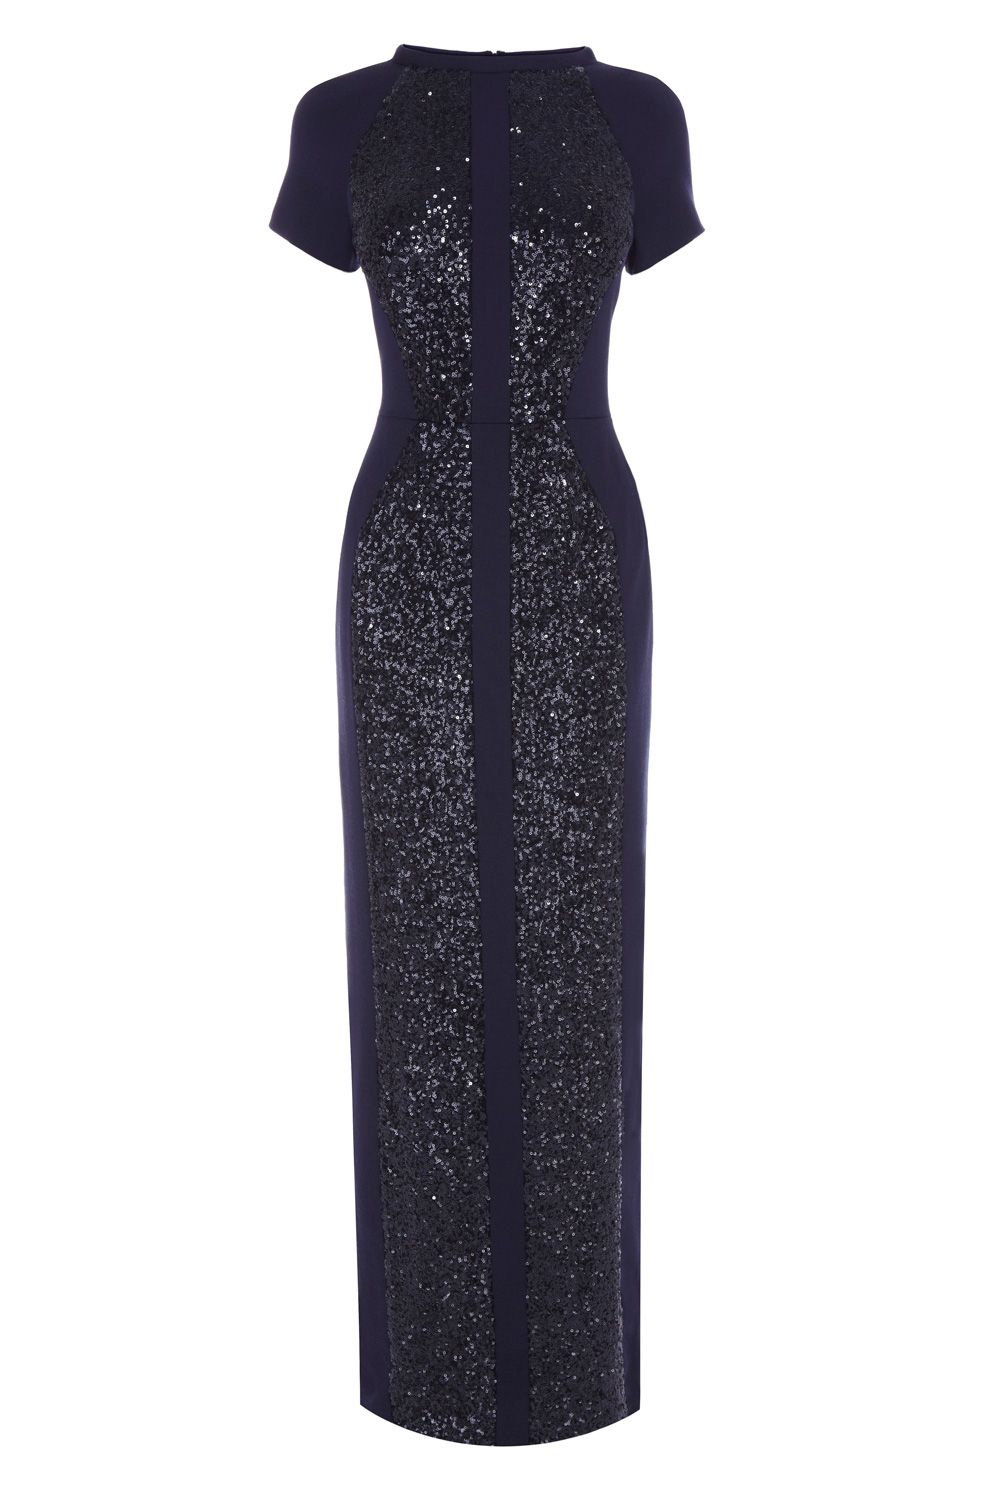 9caab94f72b1 Stand out for the evening in this short sleeved sparkling maxi dress.  Dripping in top to toe sequins The Melanie Maxi Dress features stretch mesh  inserts ...